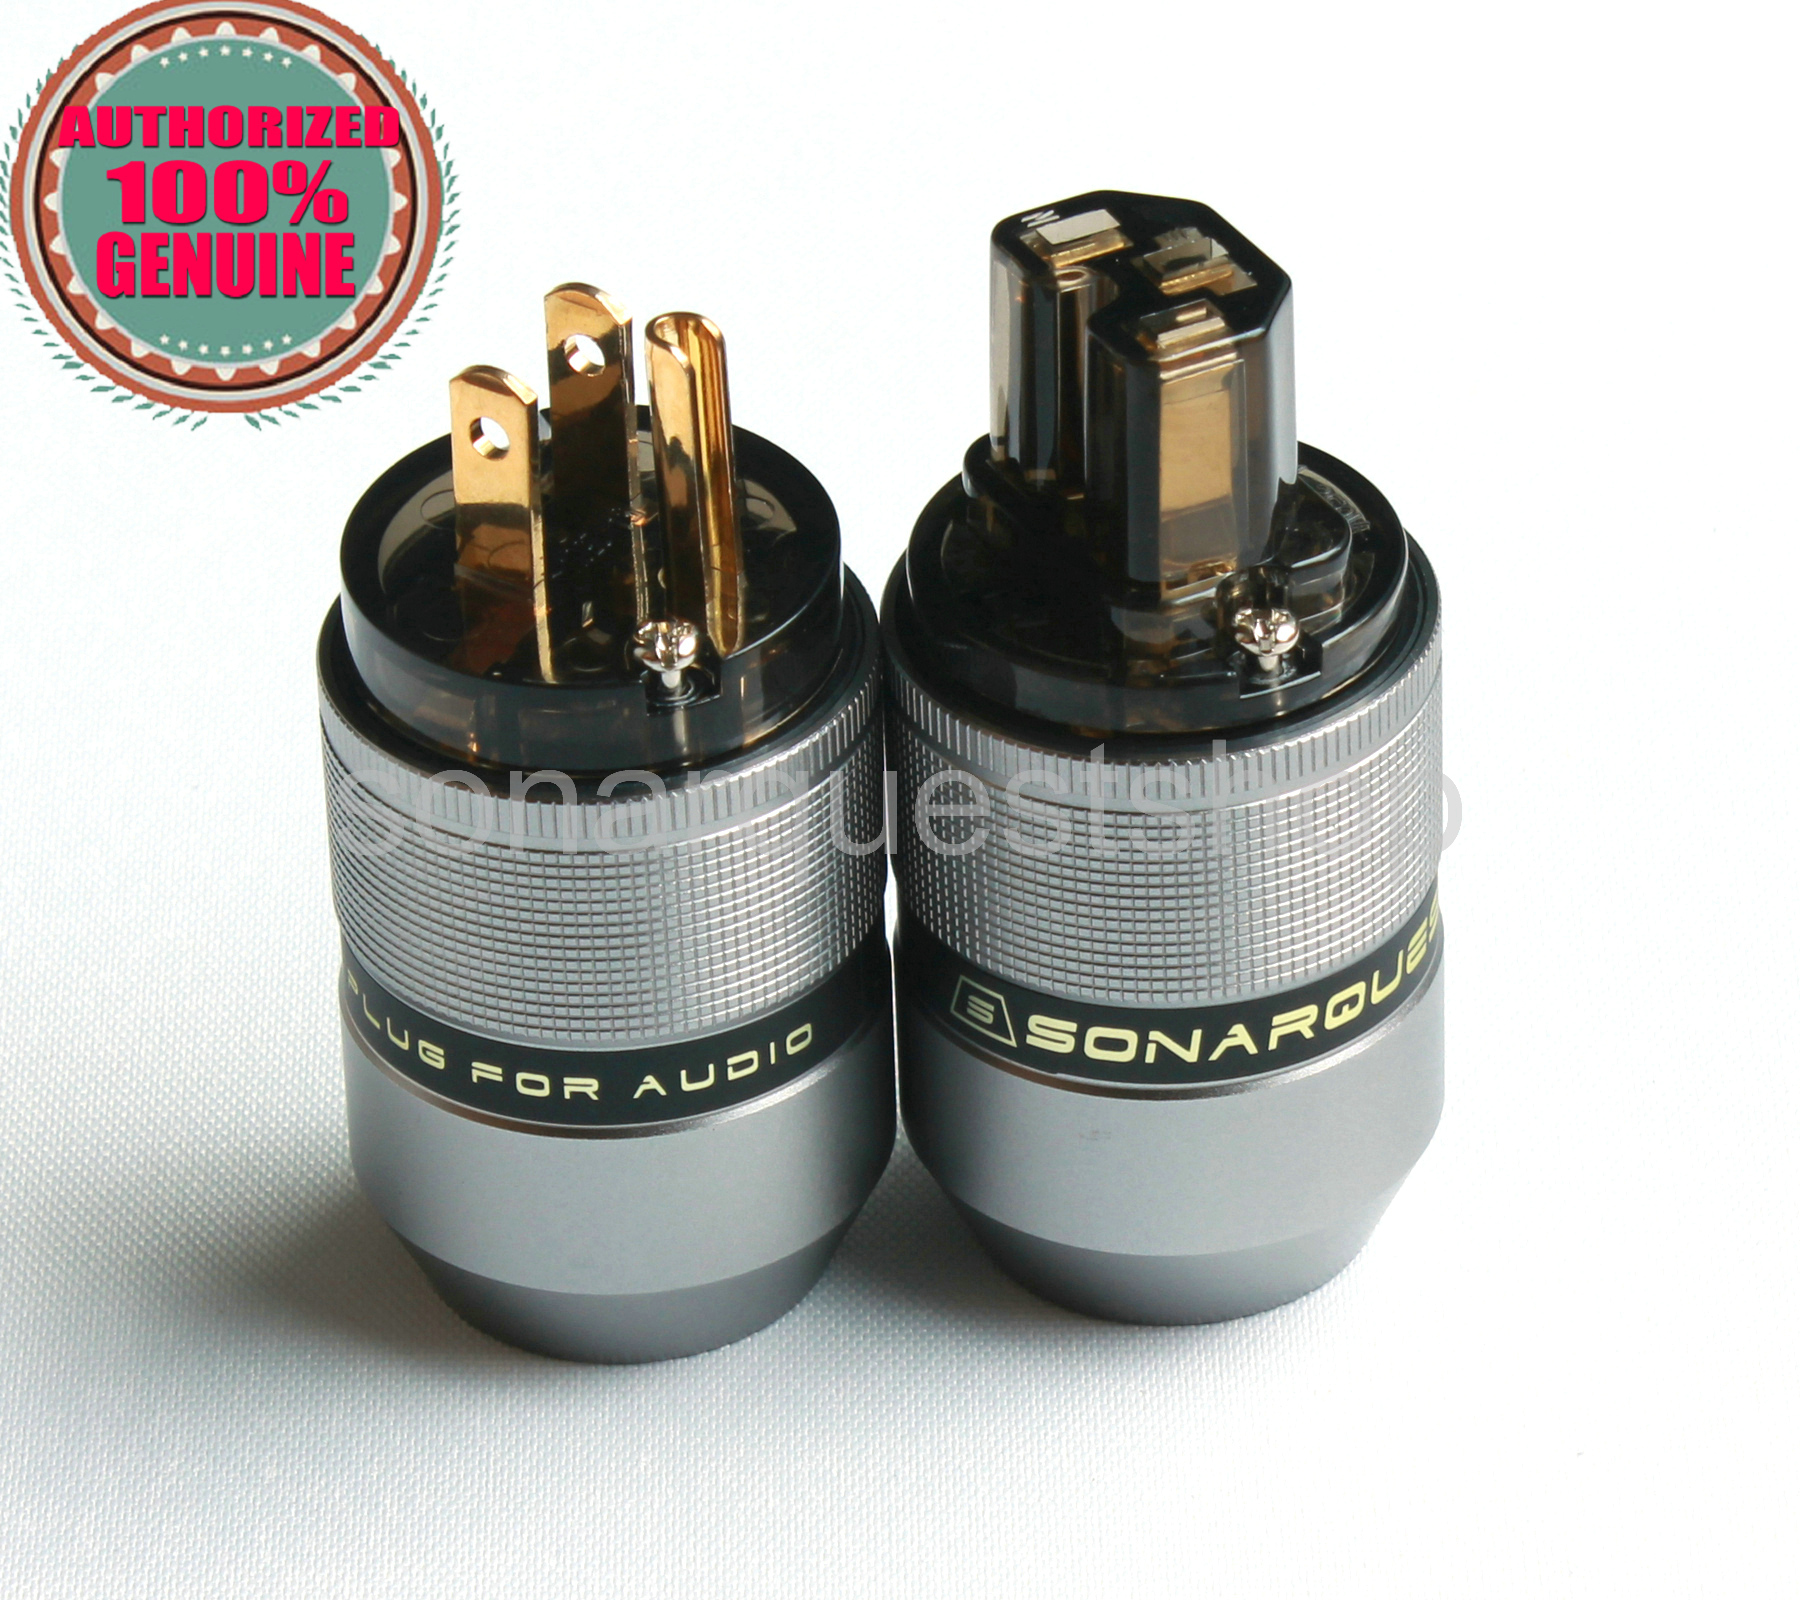 SONARQUEST PA-40M(G) + PA-40F(G) US Gold Plated Gray Special Aluminum alloy Power Plug & IEC Connector